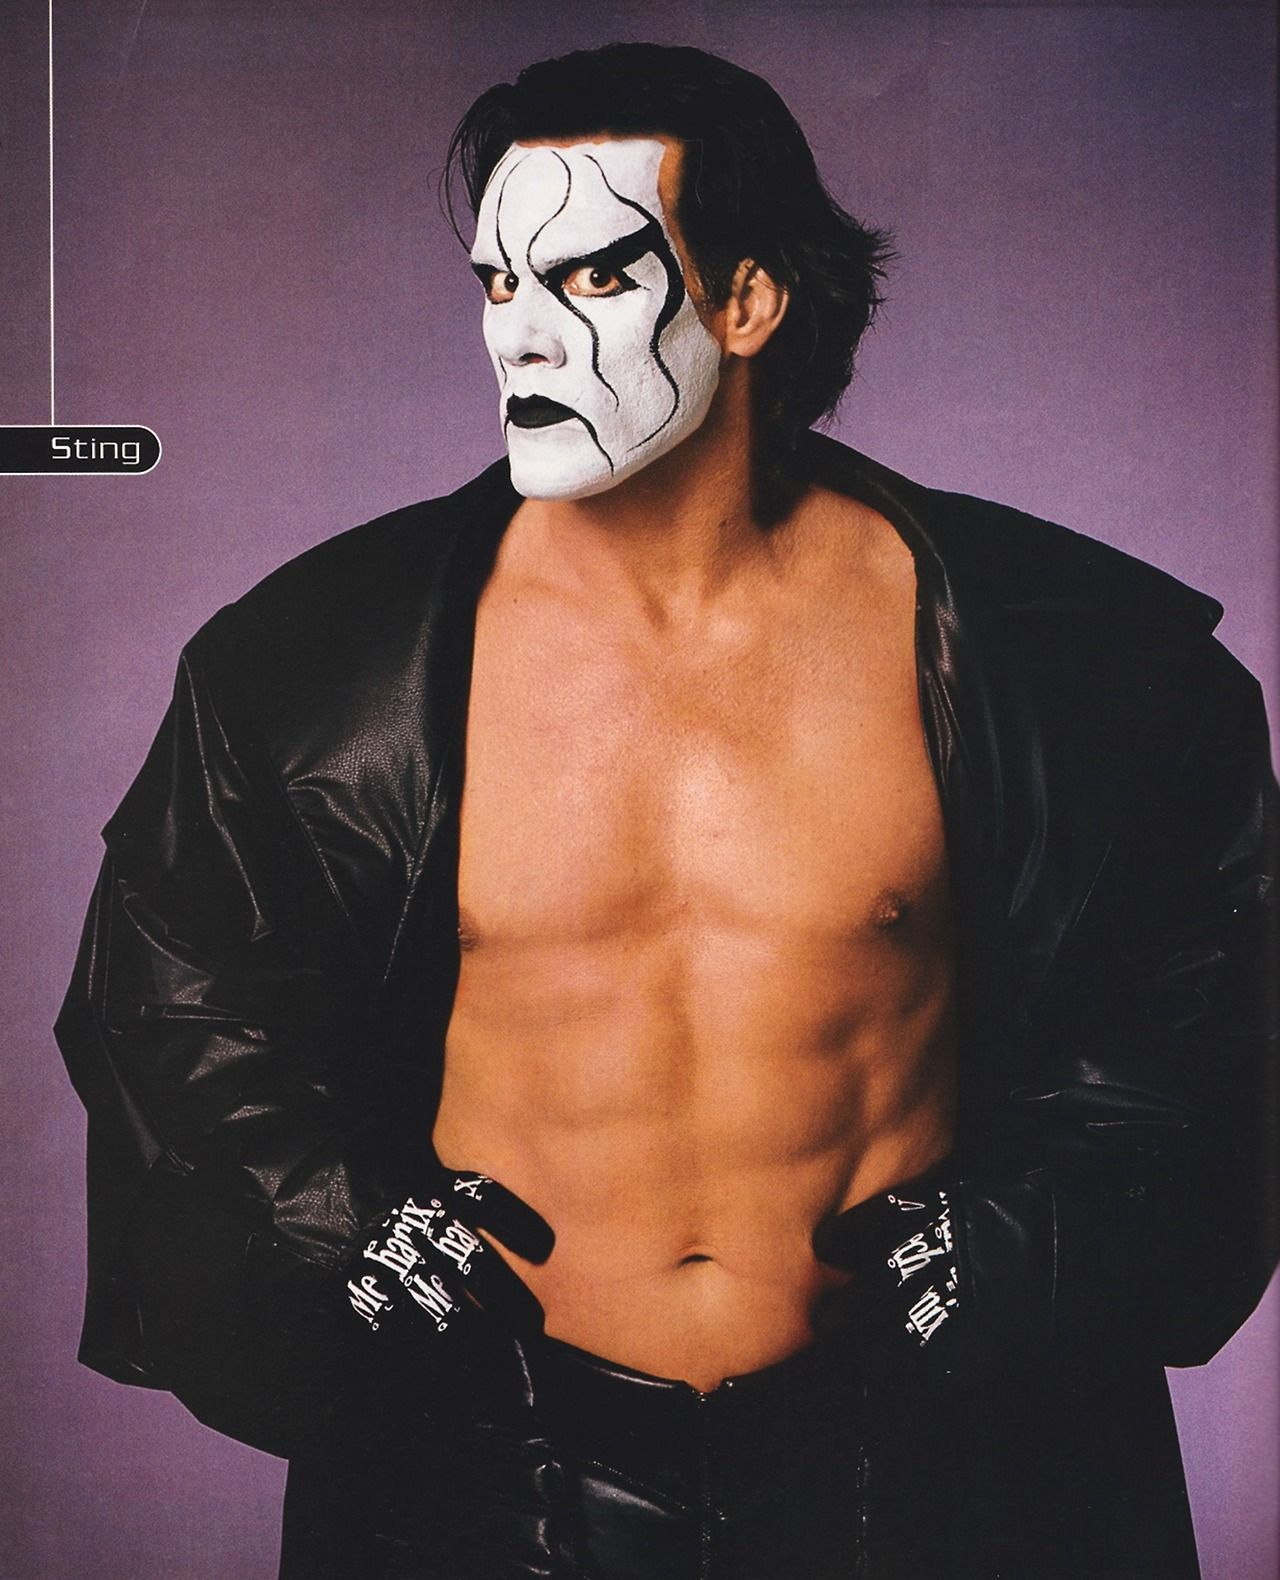 Sting Reference | Sting vs Undertaker Sequential Art